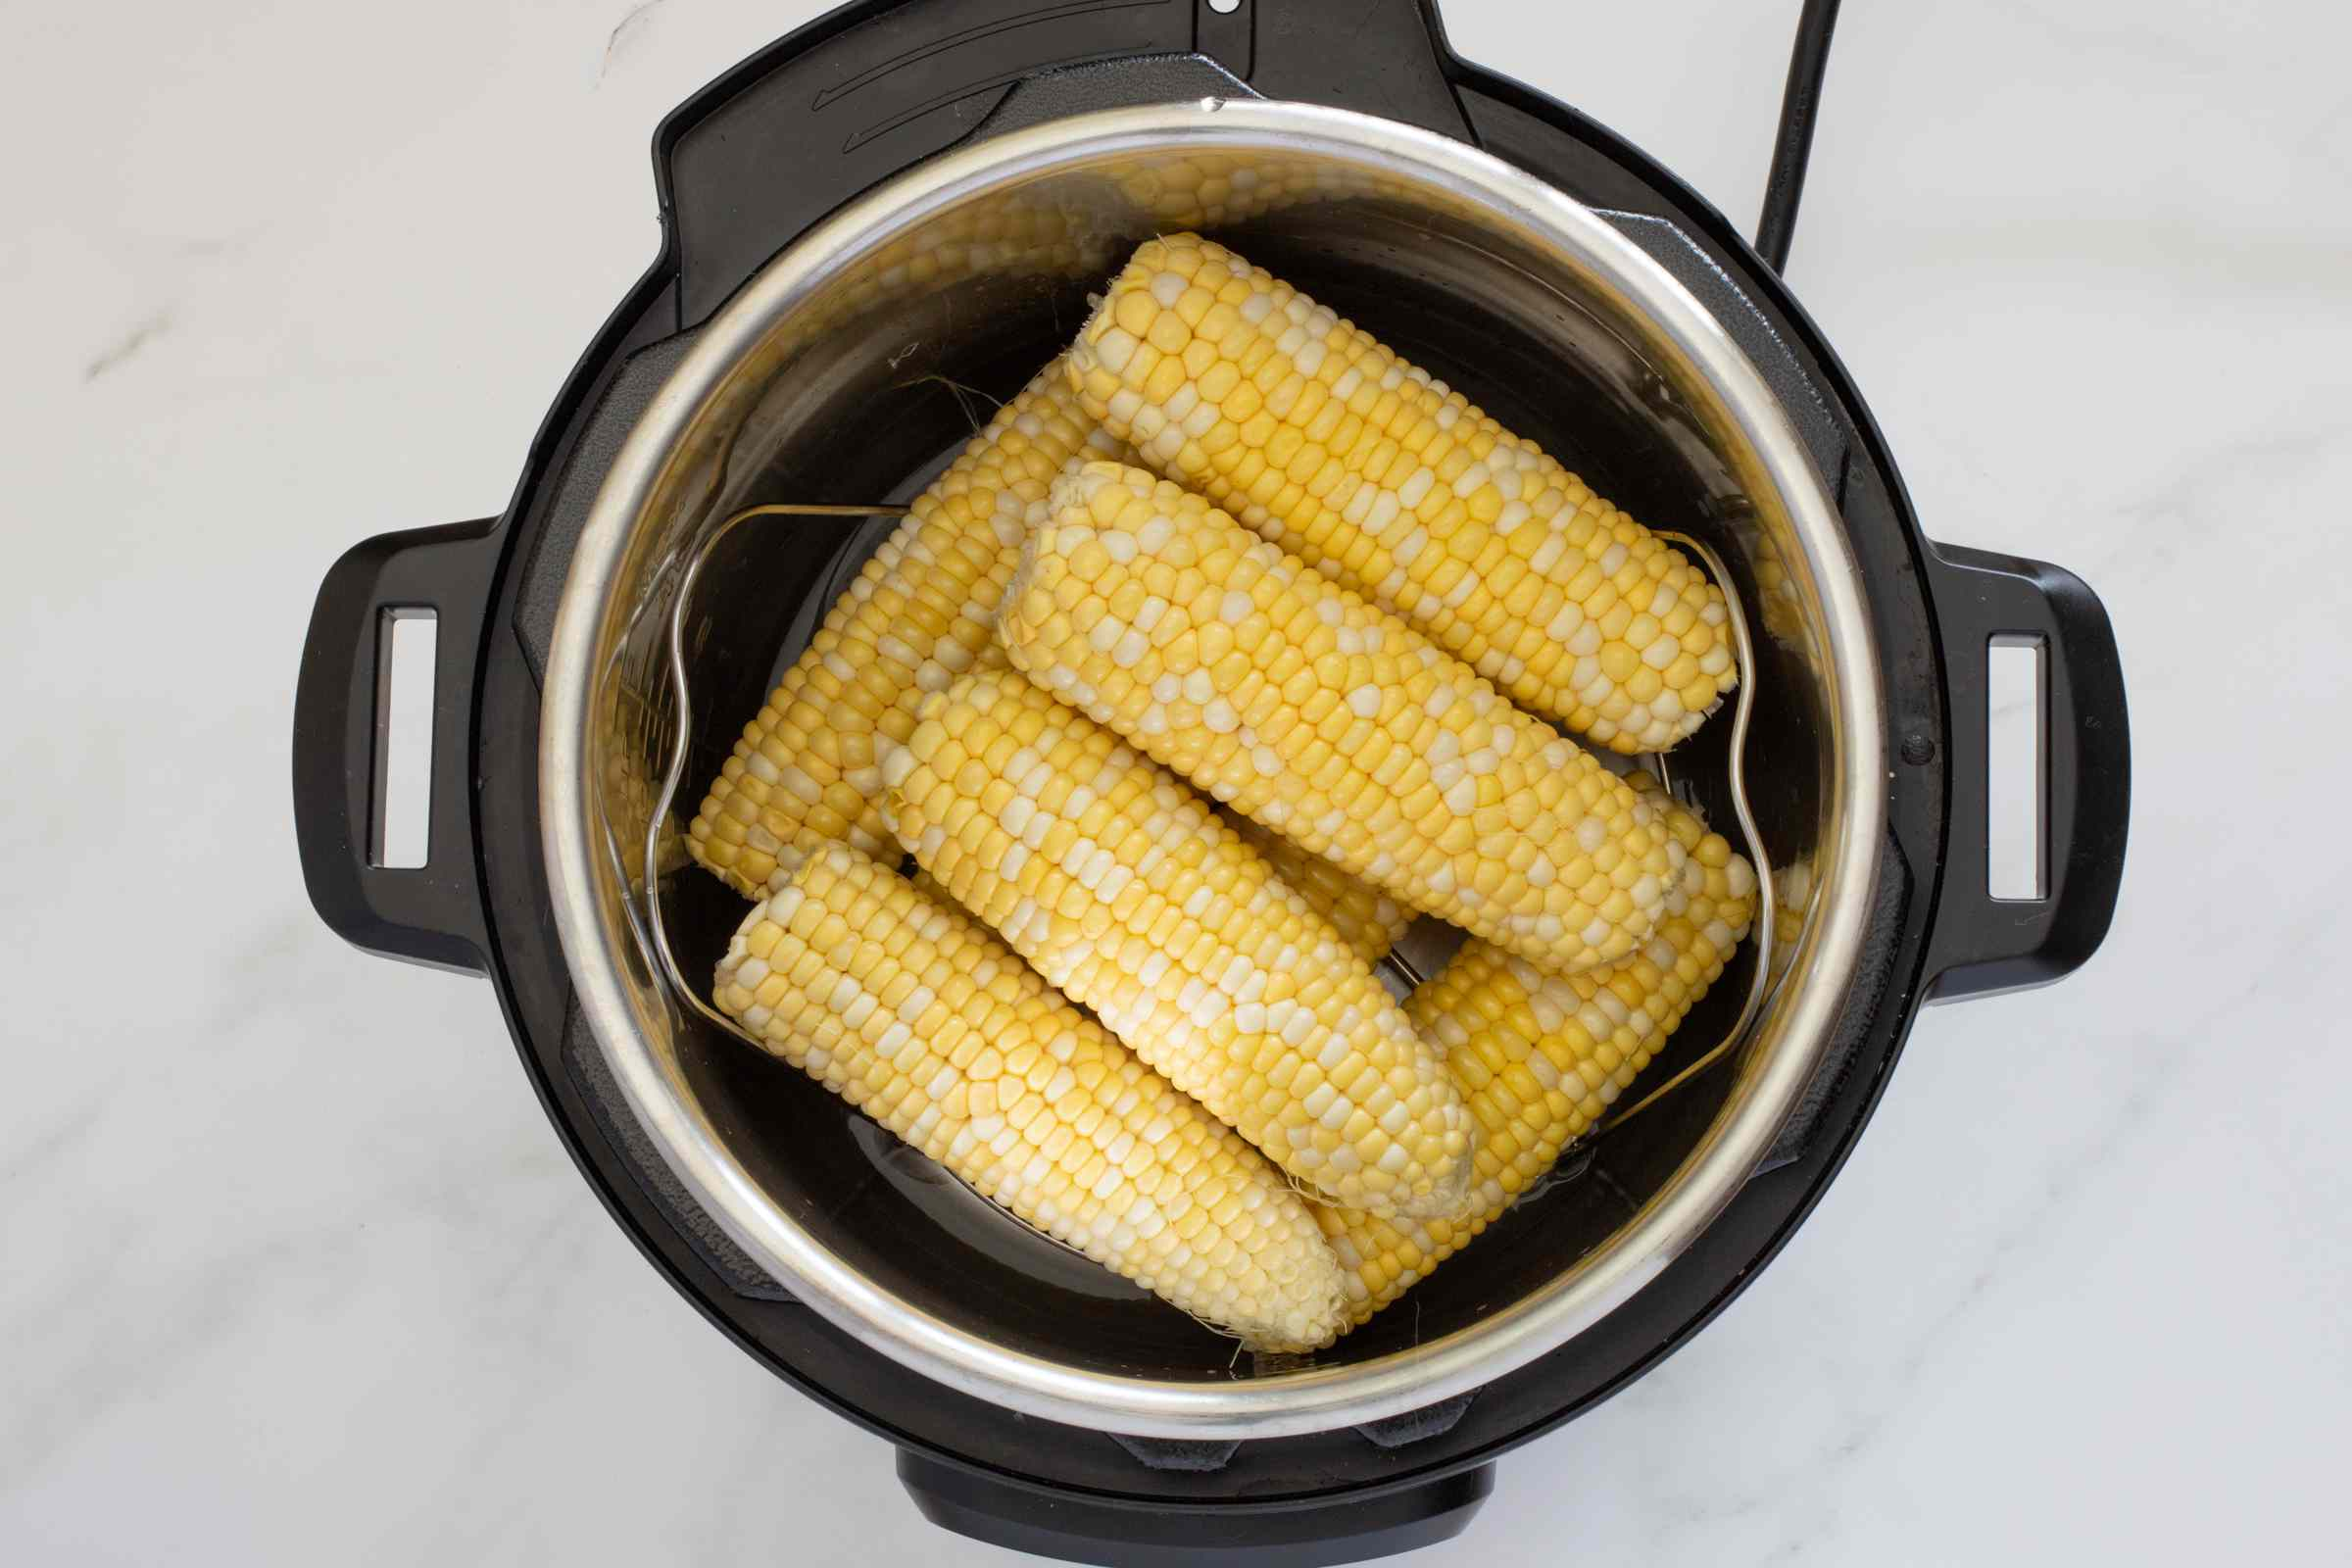 Corn on the cob stacked in the Instant Pot.